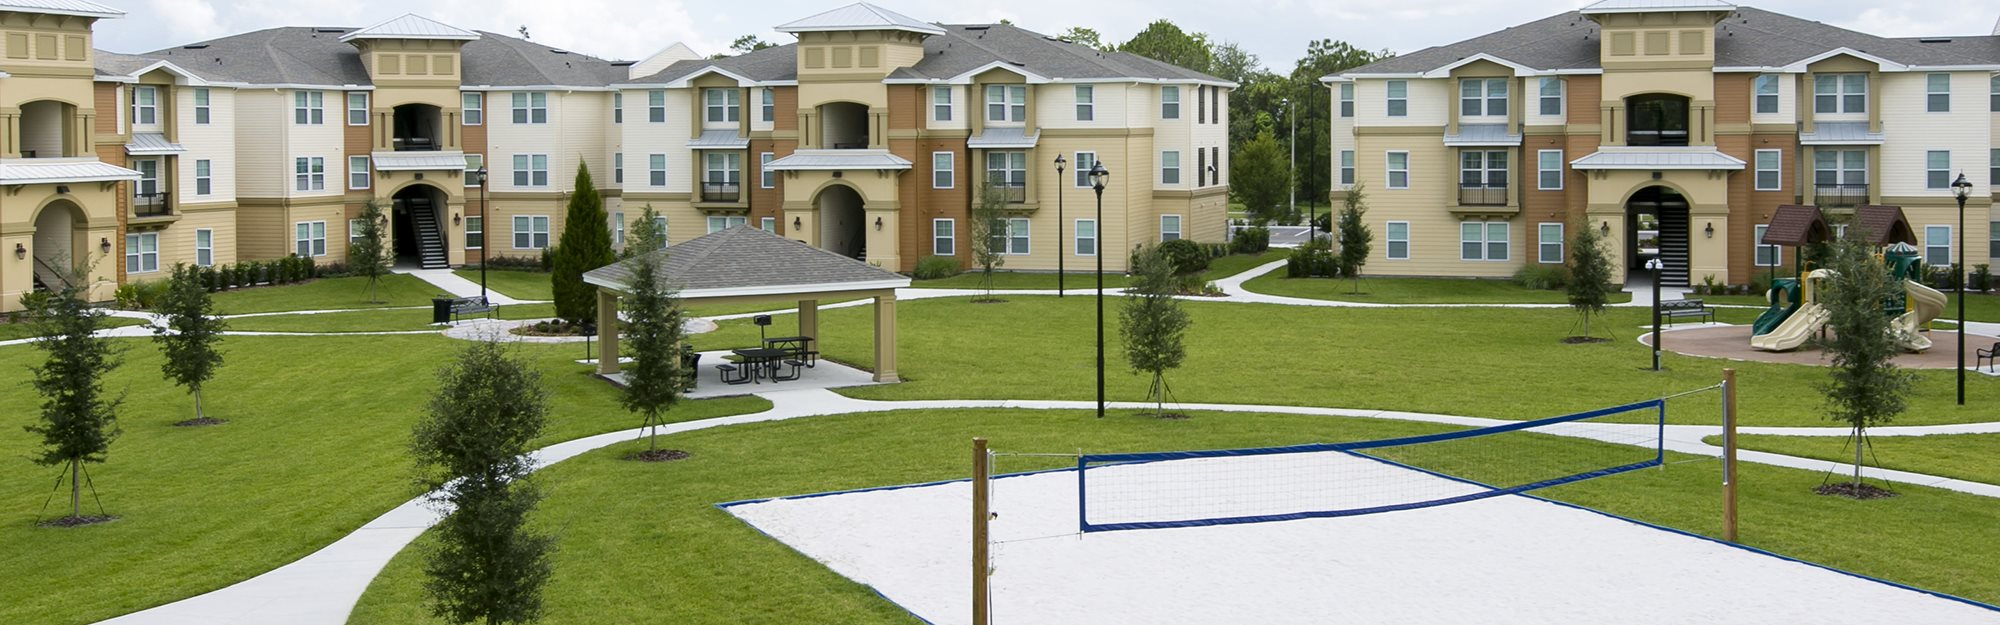 Landstar Park Apartments for rent in Orlando, FL. Make this community your new home or visit other Concord Rents communities at ConcordRents.com. Aerial